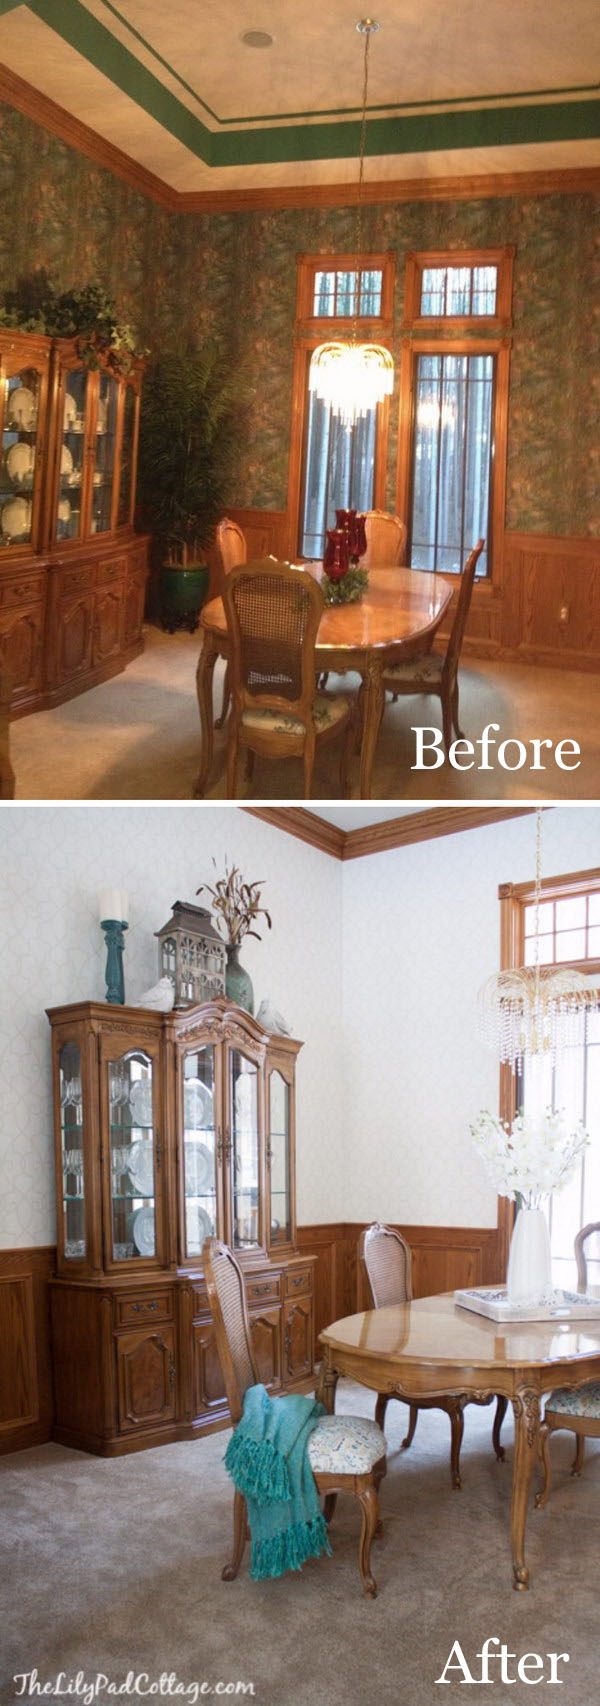 13-14-dining-room-makeover-ideas-tutorials